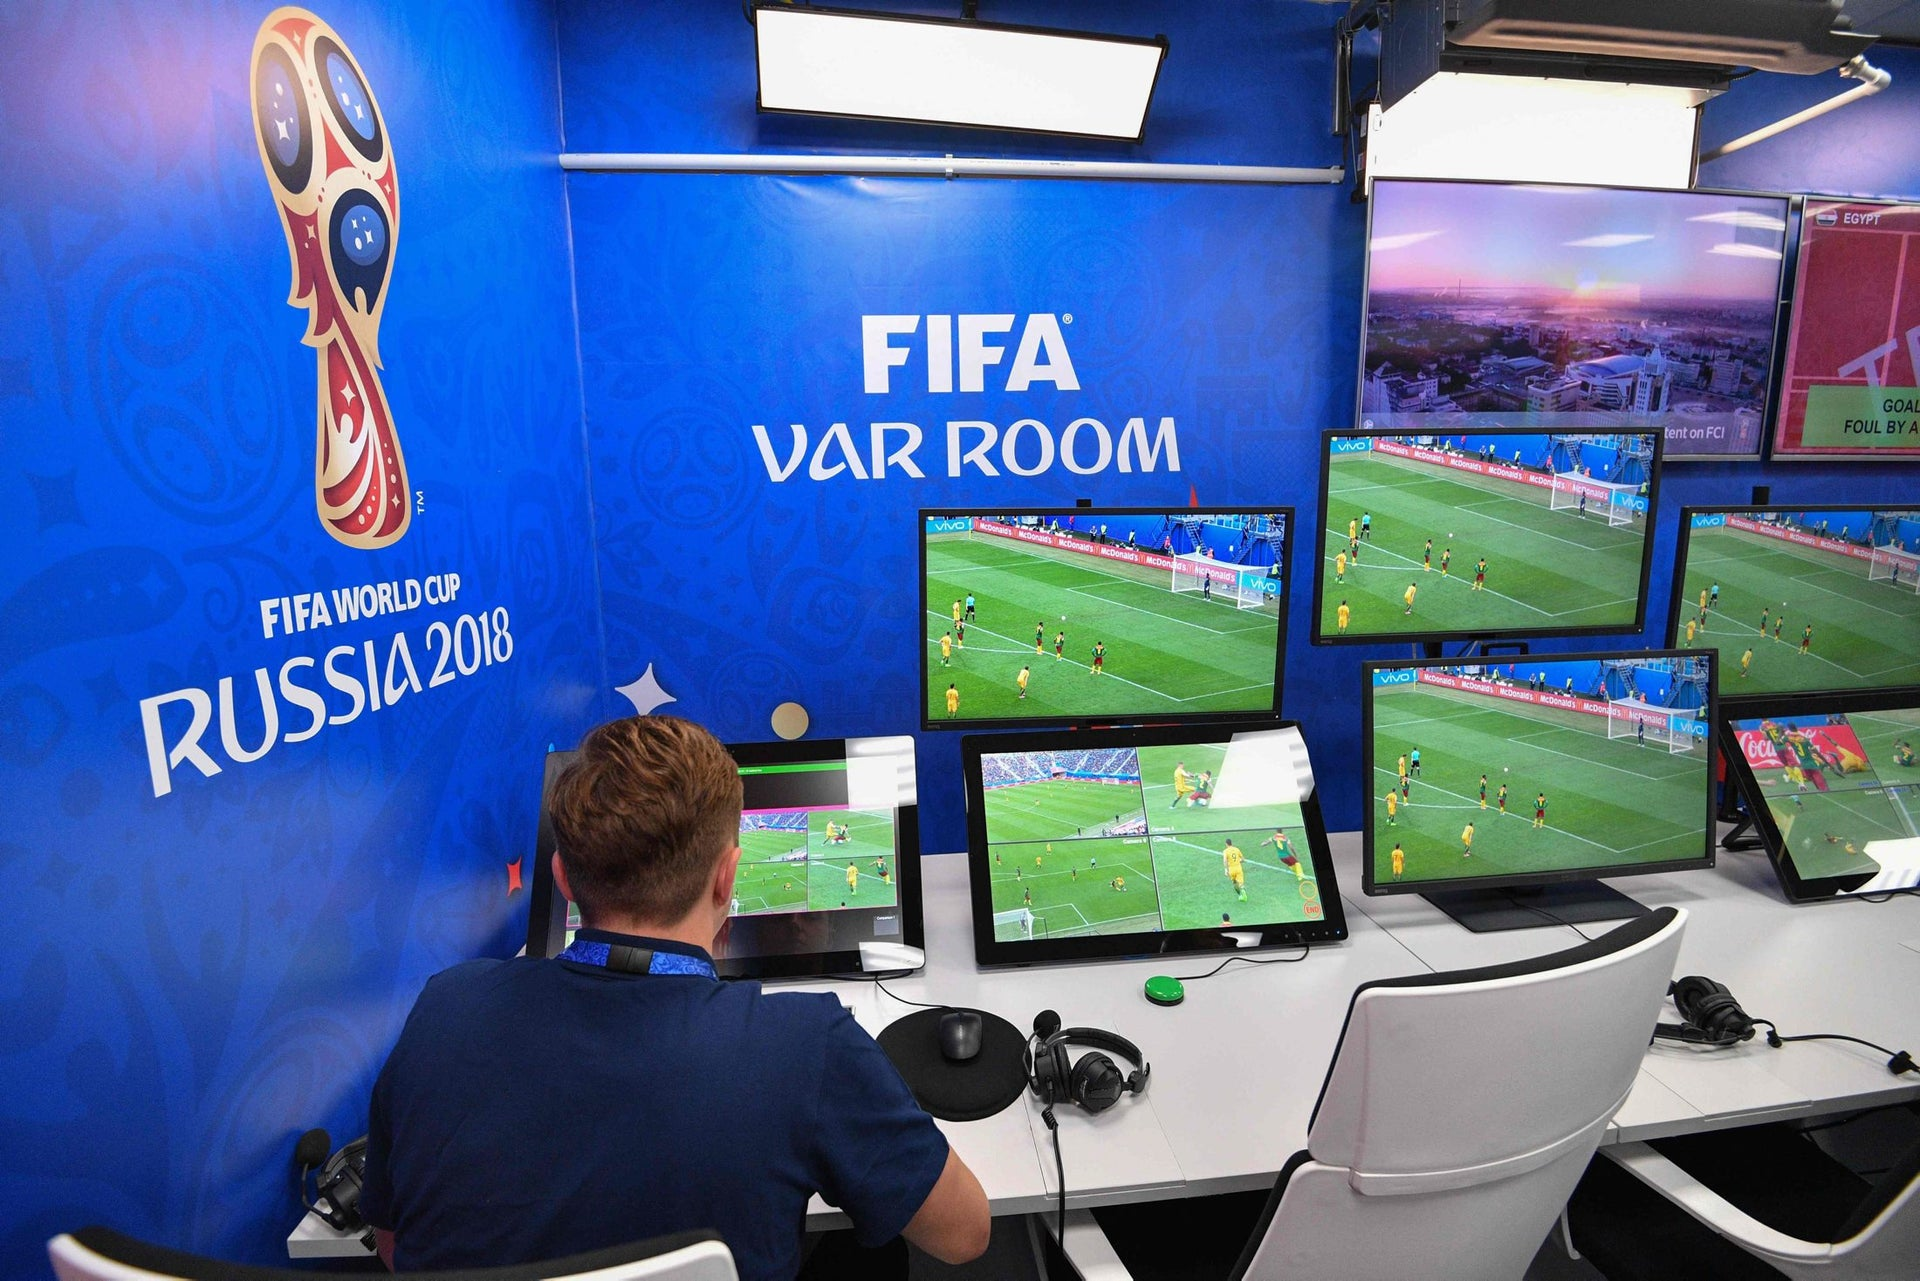 The Video Assistant Referee (VAR) operations room for the 2018 FIFA World Cup in Moscow, June 9, 2018.